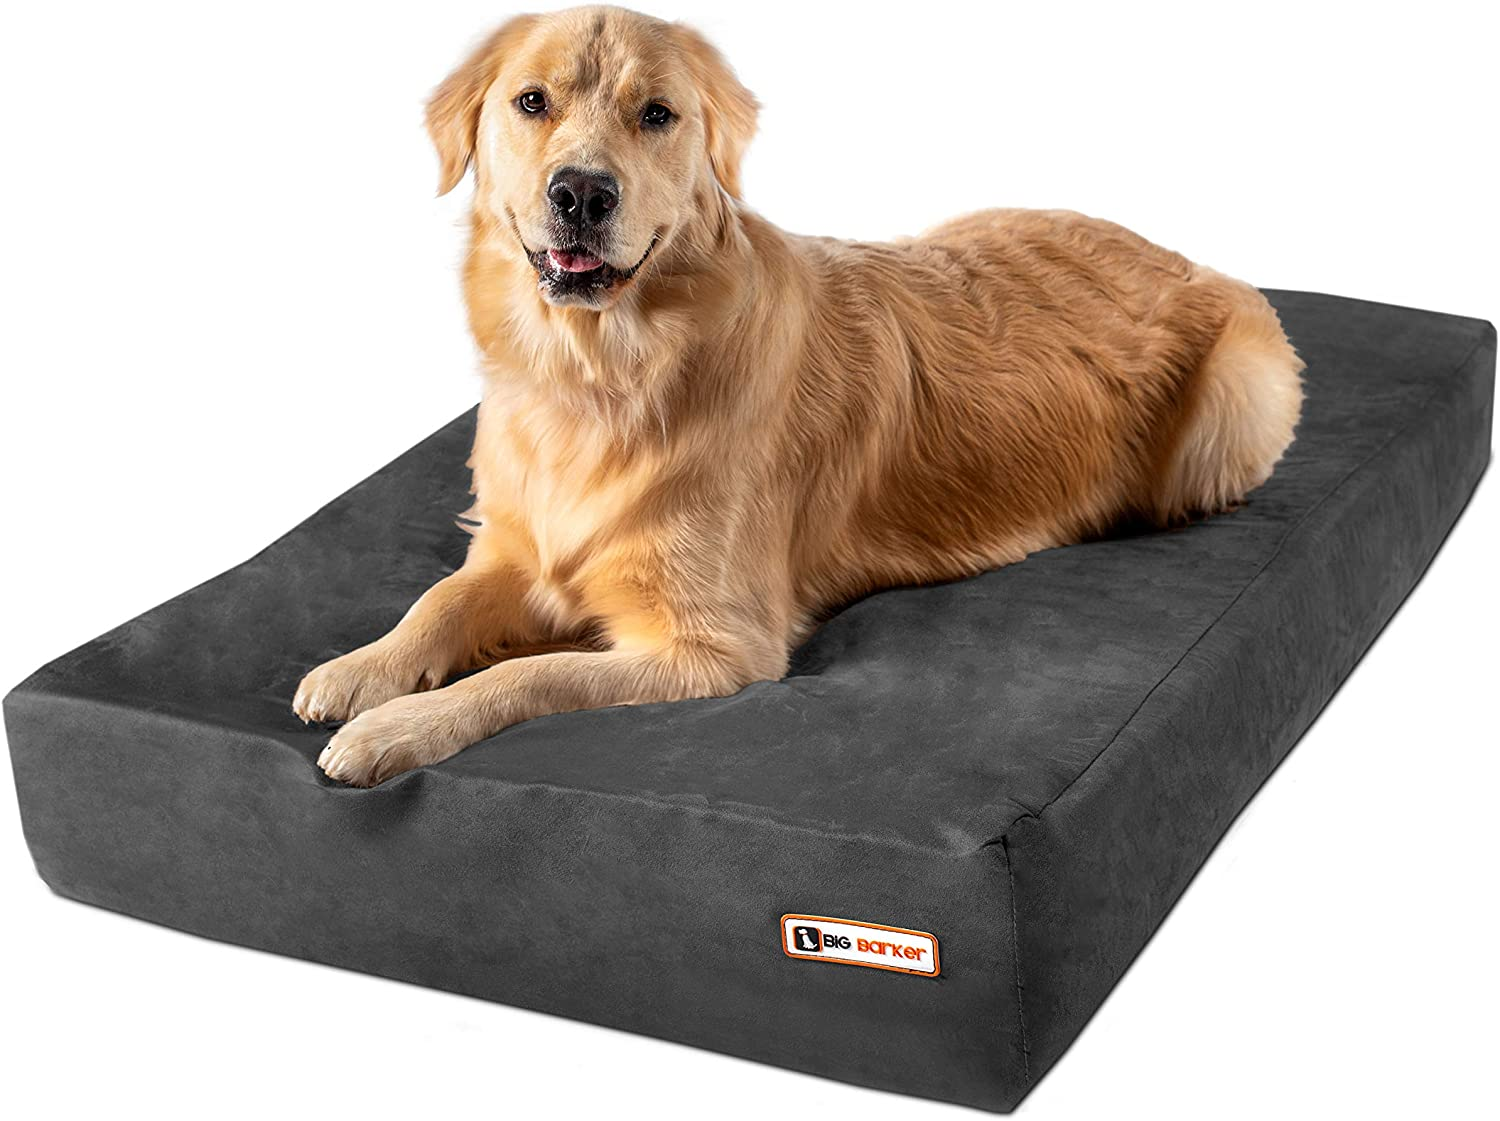 Big Barker 7 Pillow Top Orthopedic Dog Bed For Large And Extra Large Breed Dogs Sleek Edition Large 48 X 30 X 7 Charcoal Gray Kitchen Dining